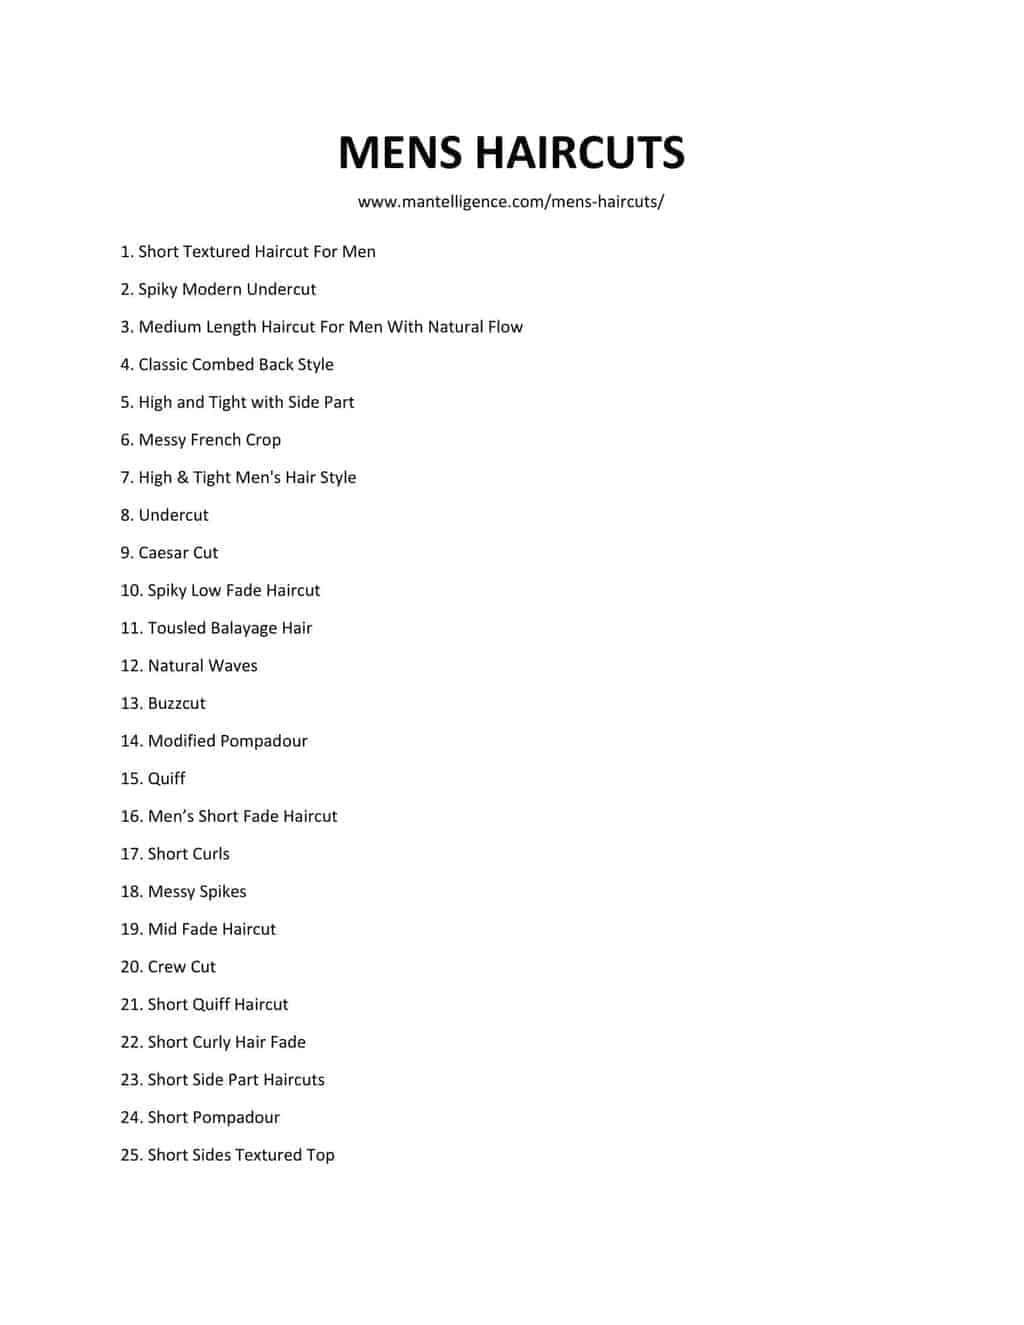 List of MENS HAIRCUTS-1